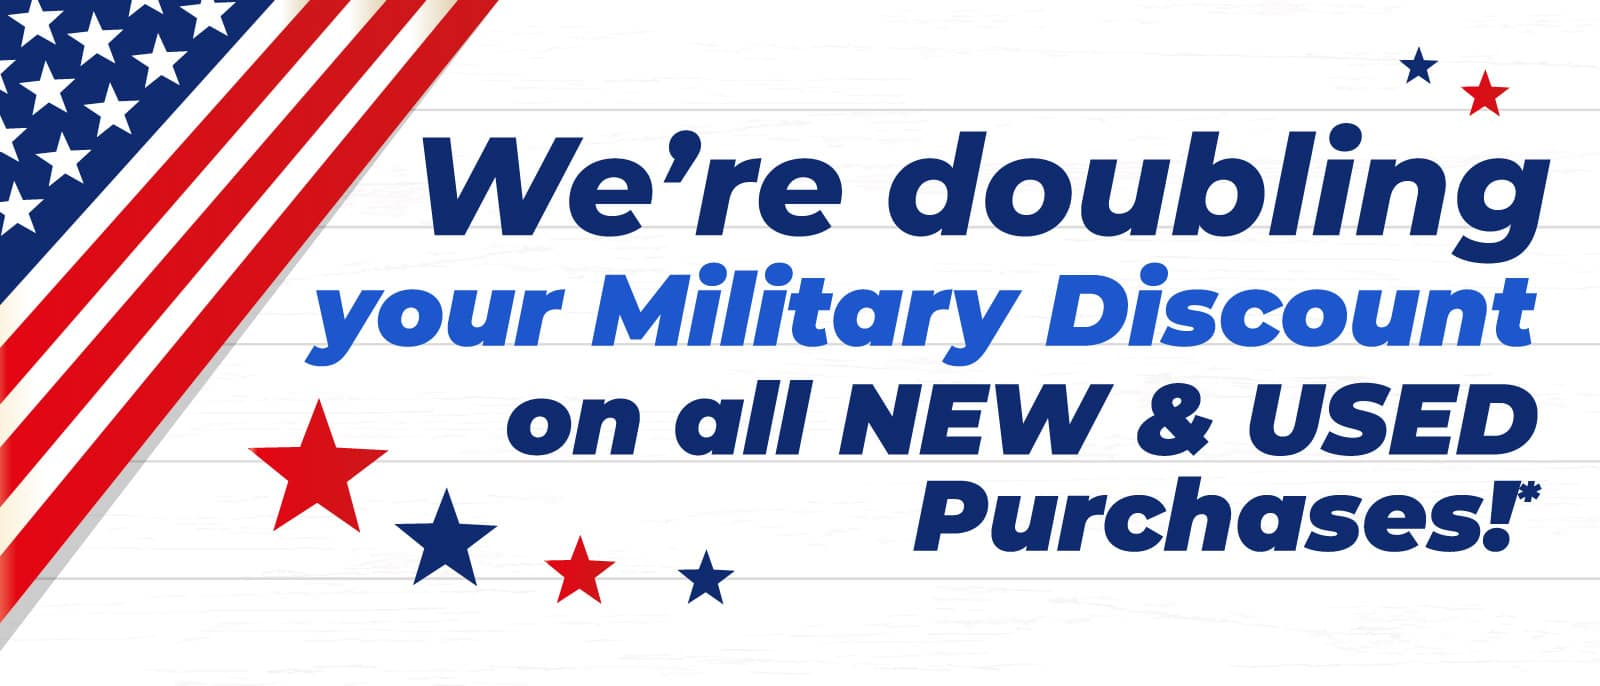 We're doubling your Military Discount on all NEW & USED Purchases